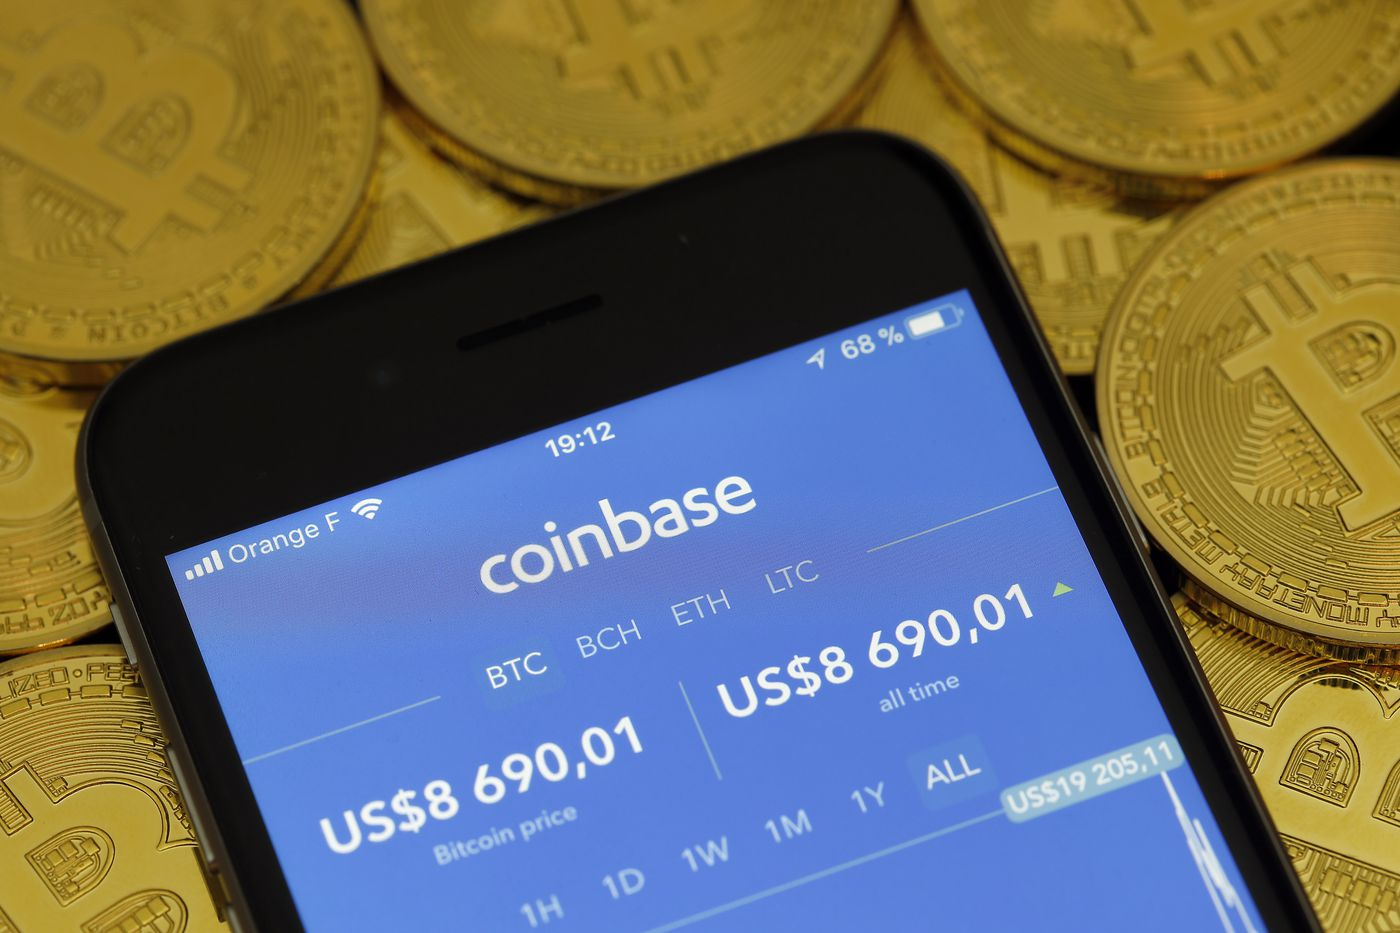 how to get in contact with coinbase